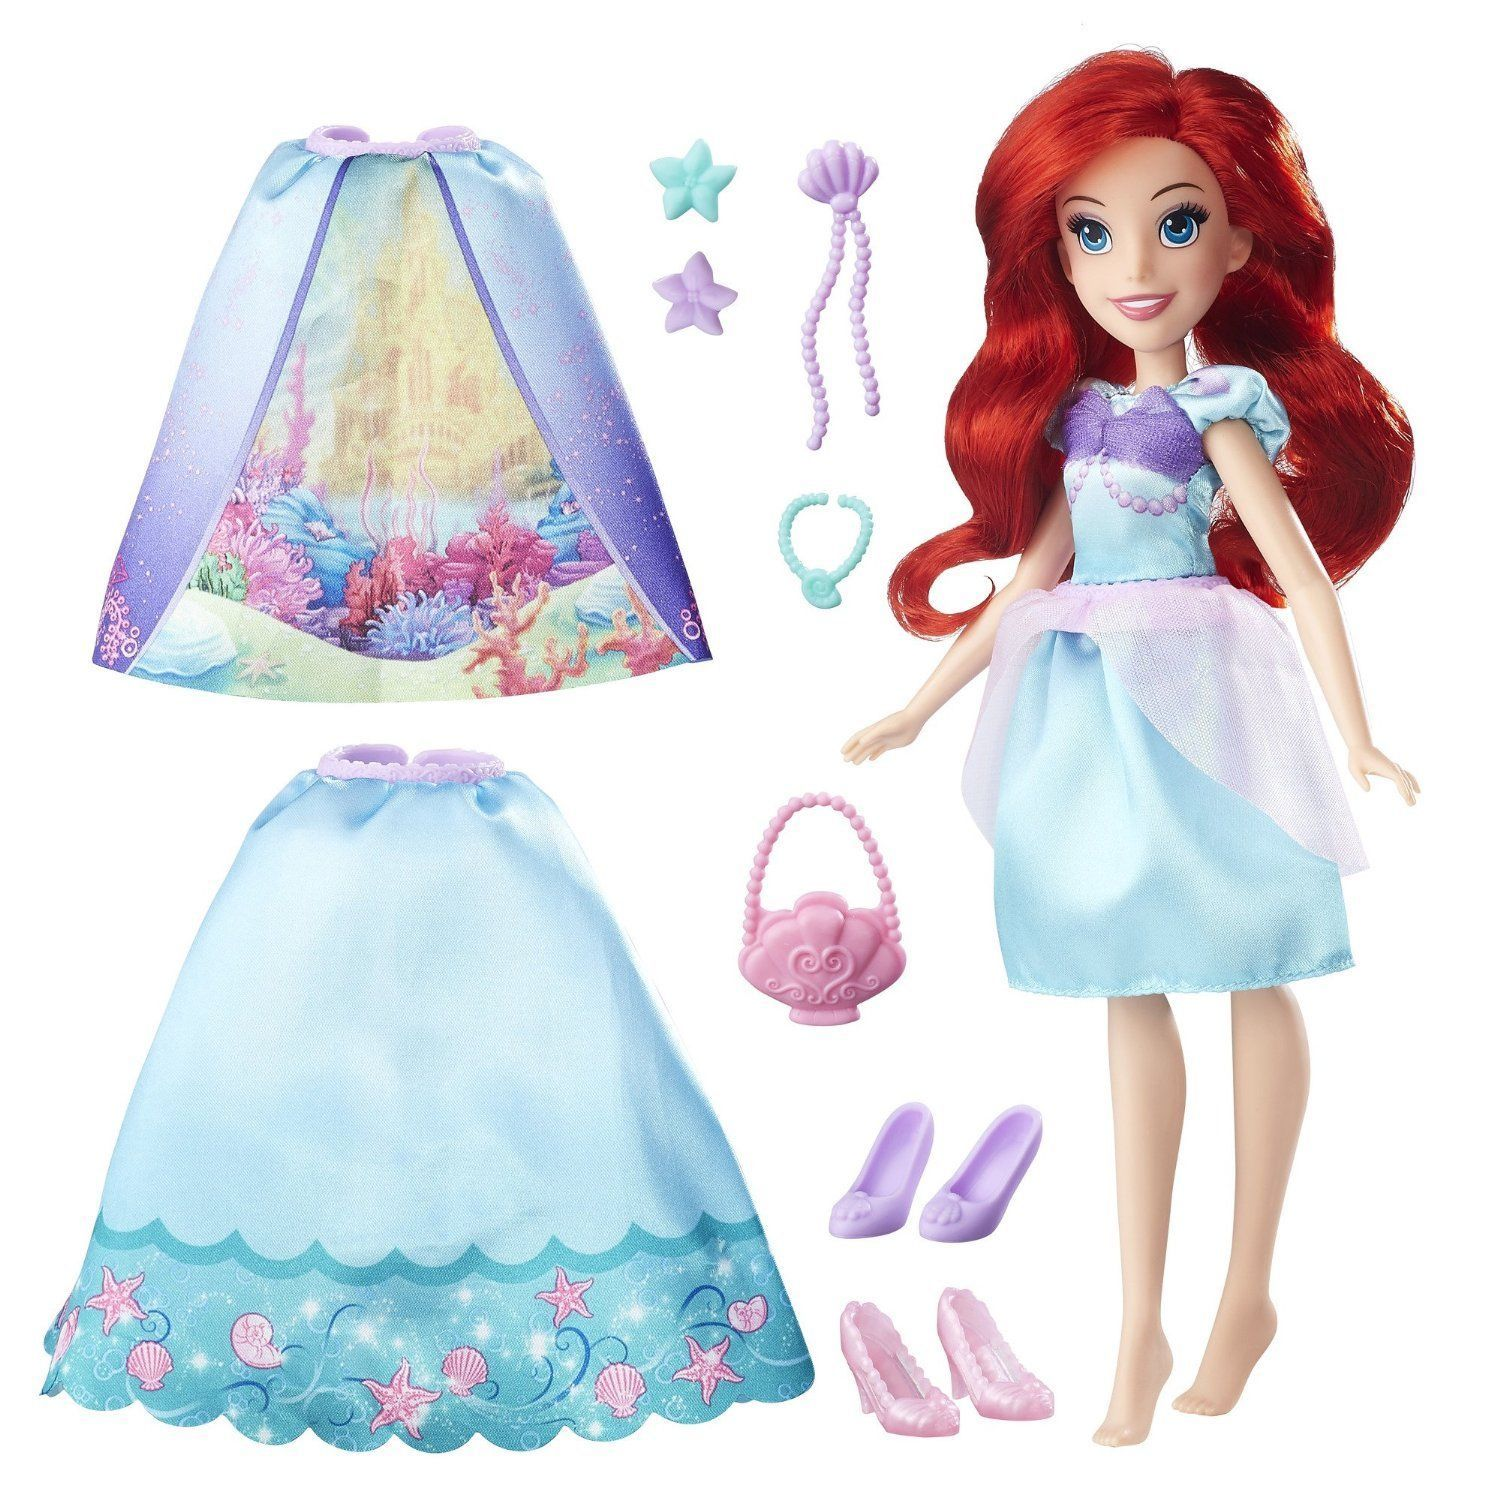 Disney Princess Ariel Layer n' Style Doll in Blue by Hasbro